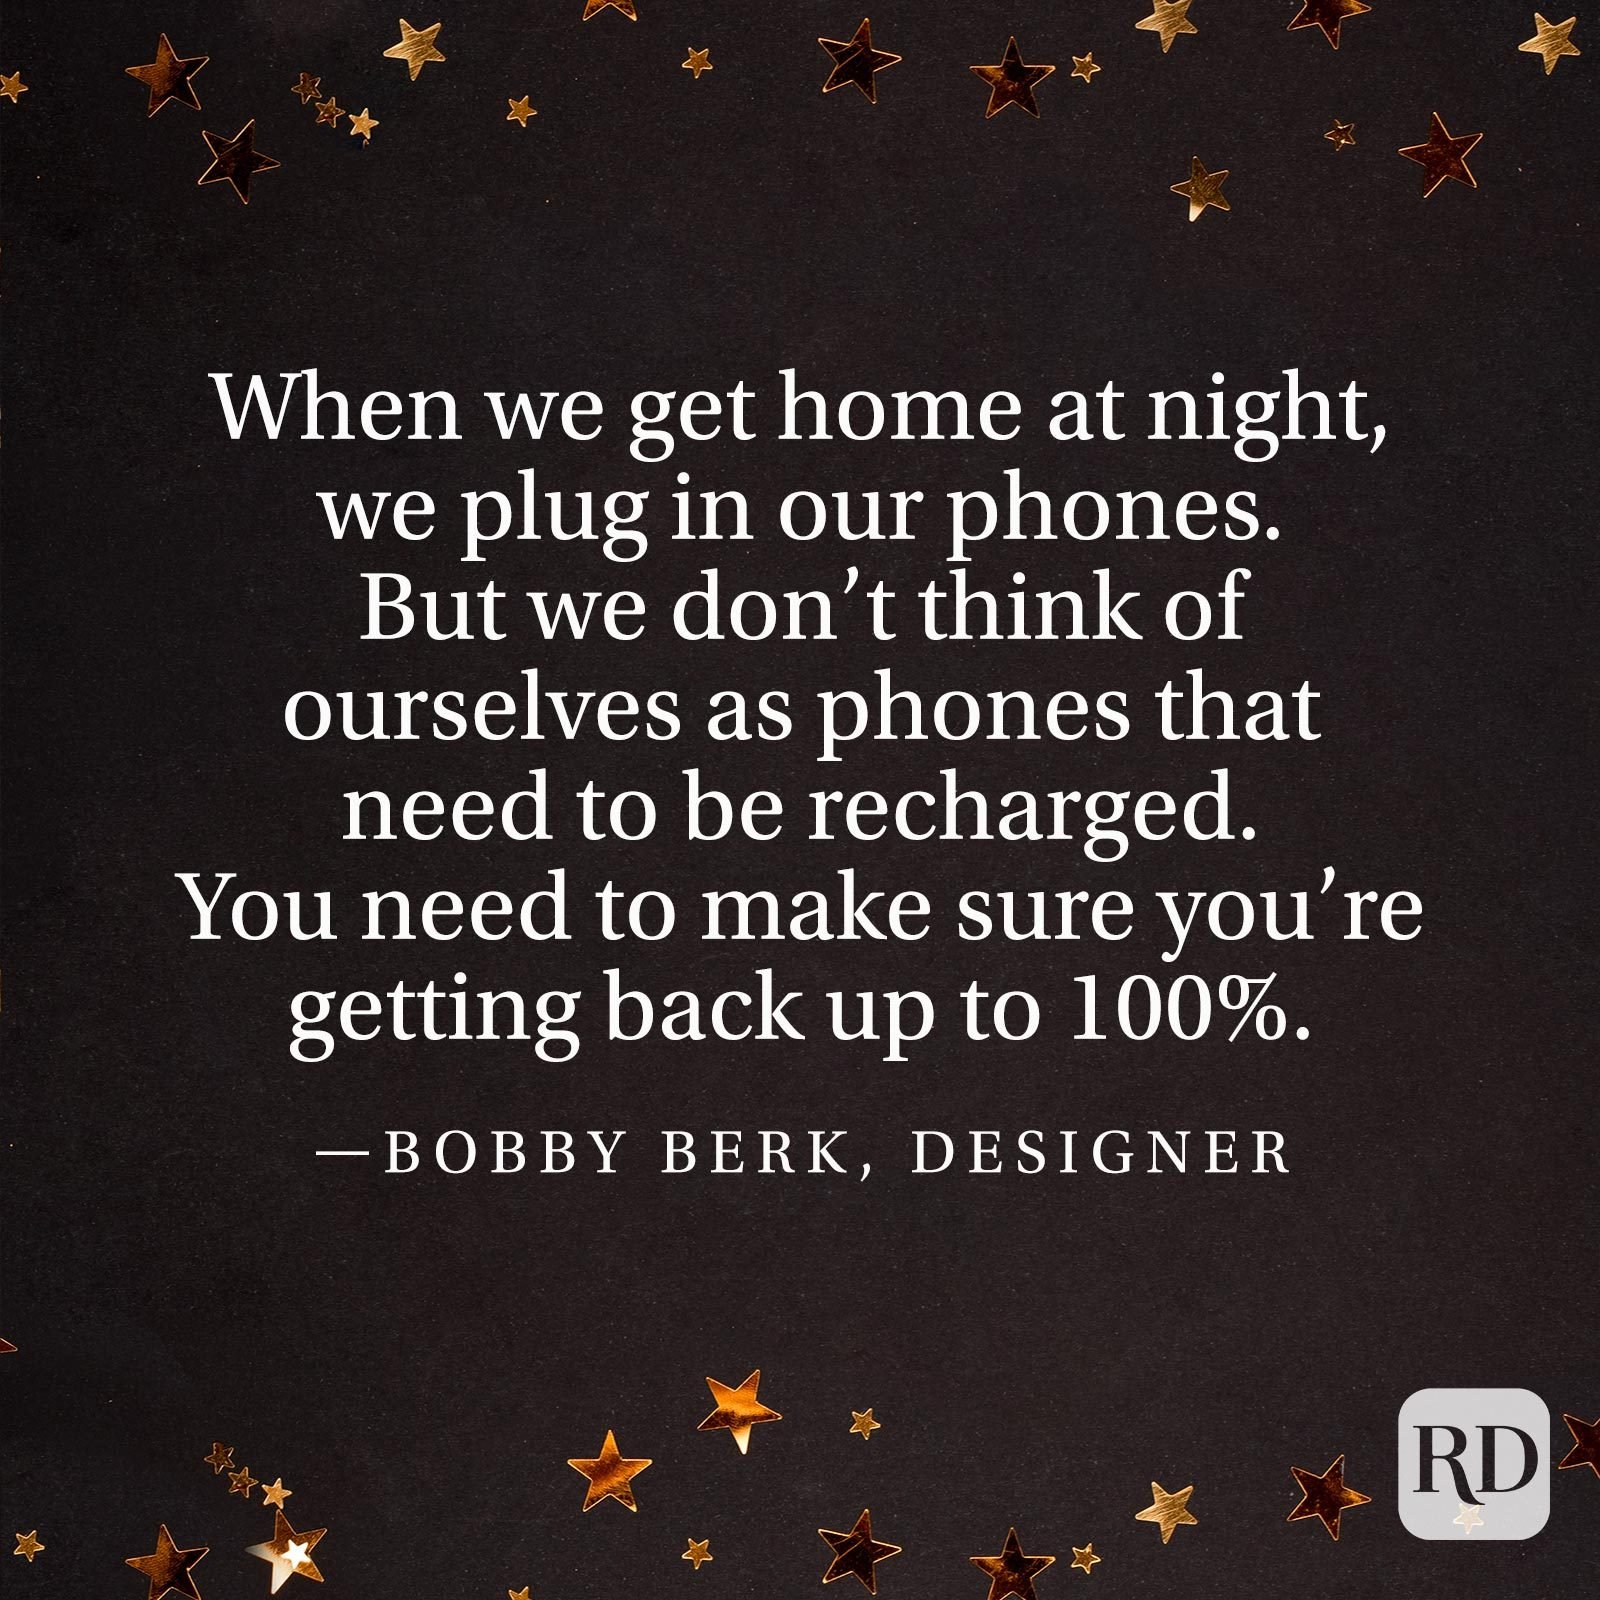 """When we get home at night, we plug in our phones. But we don't think of ourselves as phones that need to be recharged. You need to make sure you're getting back up to 100%."" —Bobby Berk, designer"